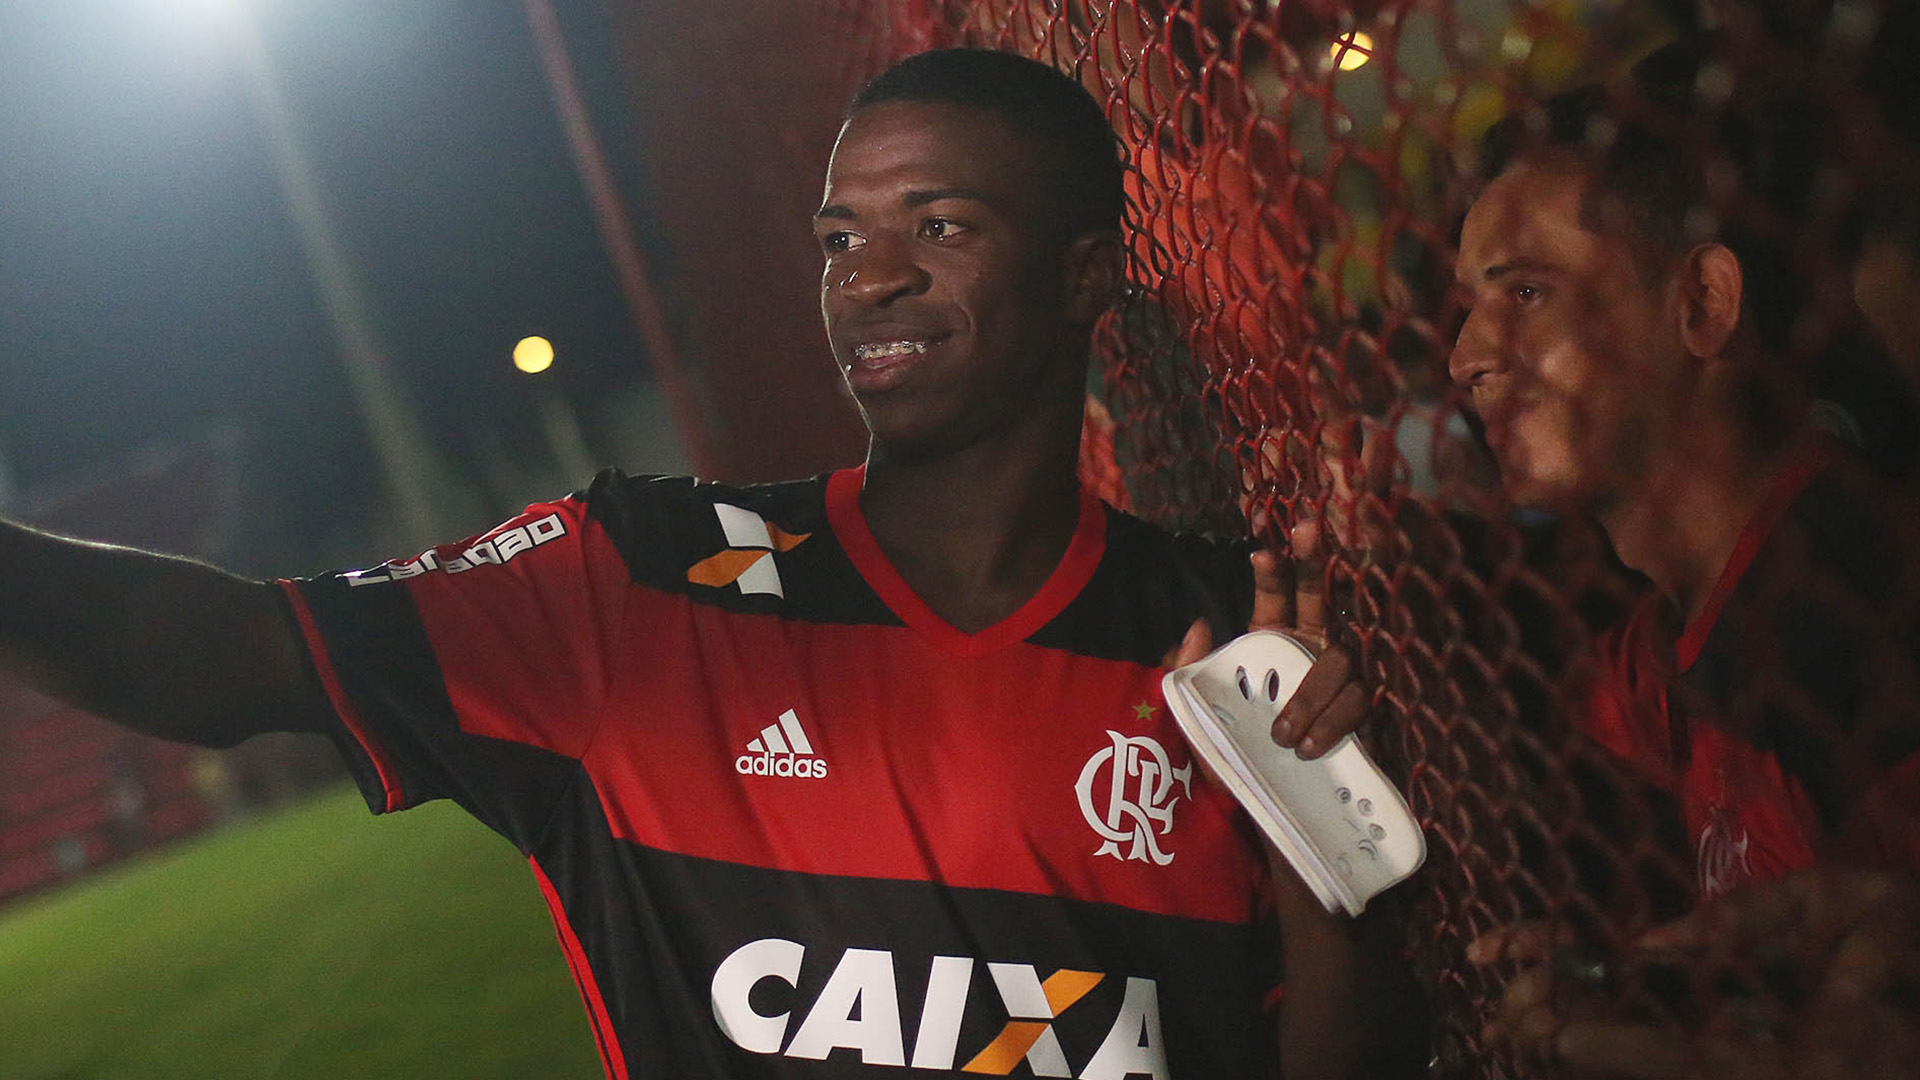 Transfer rumor roundup 5/8: Real Madrid win Vinicius Junior race